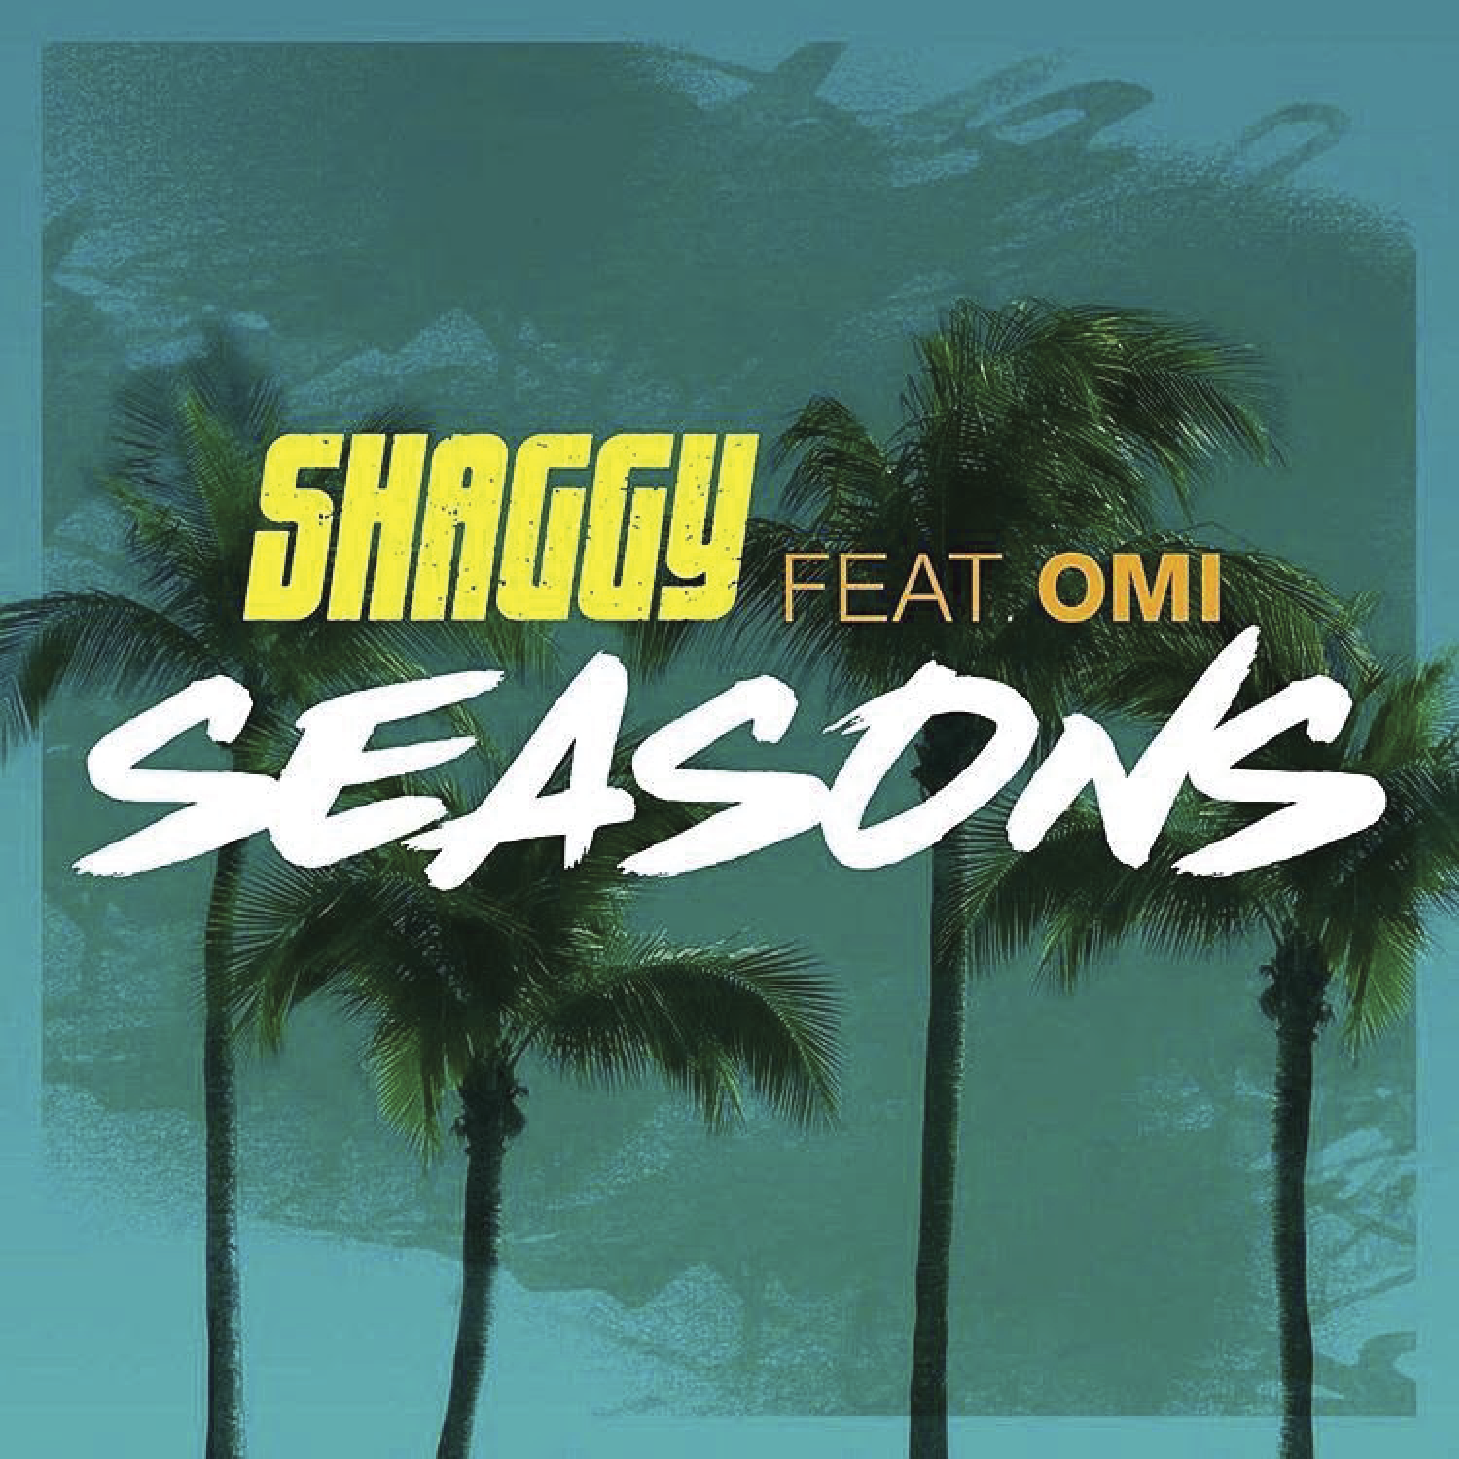 Music Thumbnails 1916_Shaggy ft Omi - Seasons.png